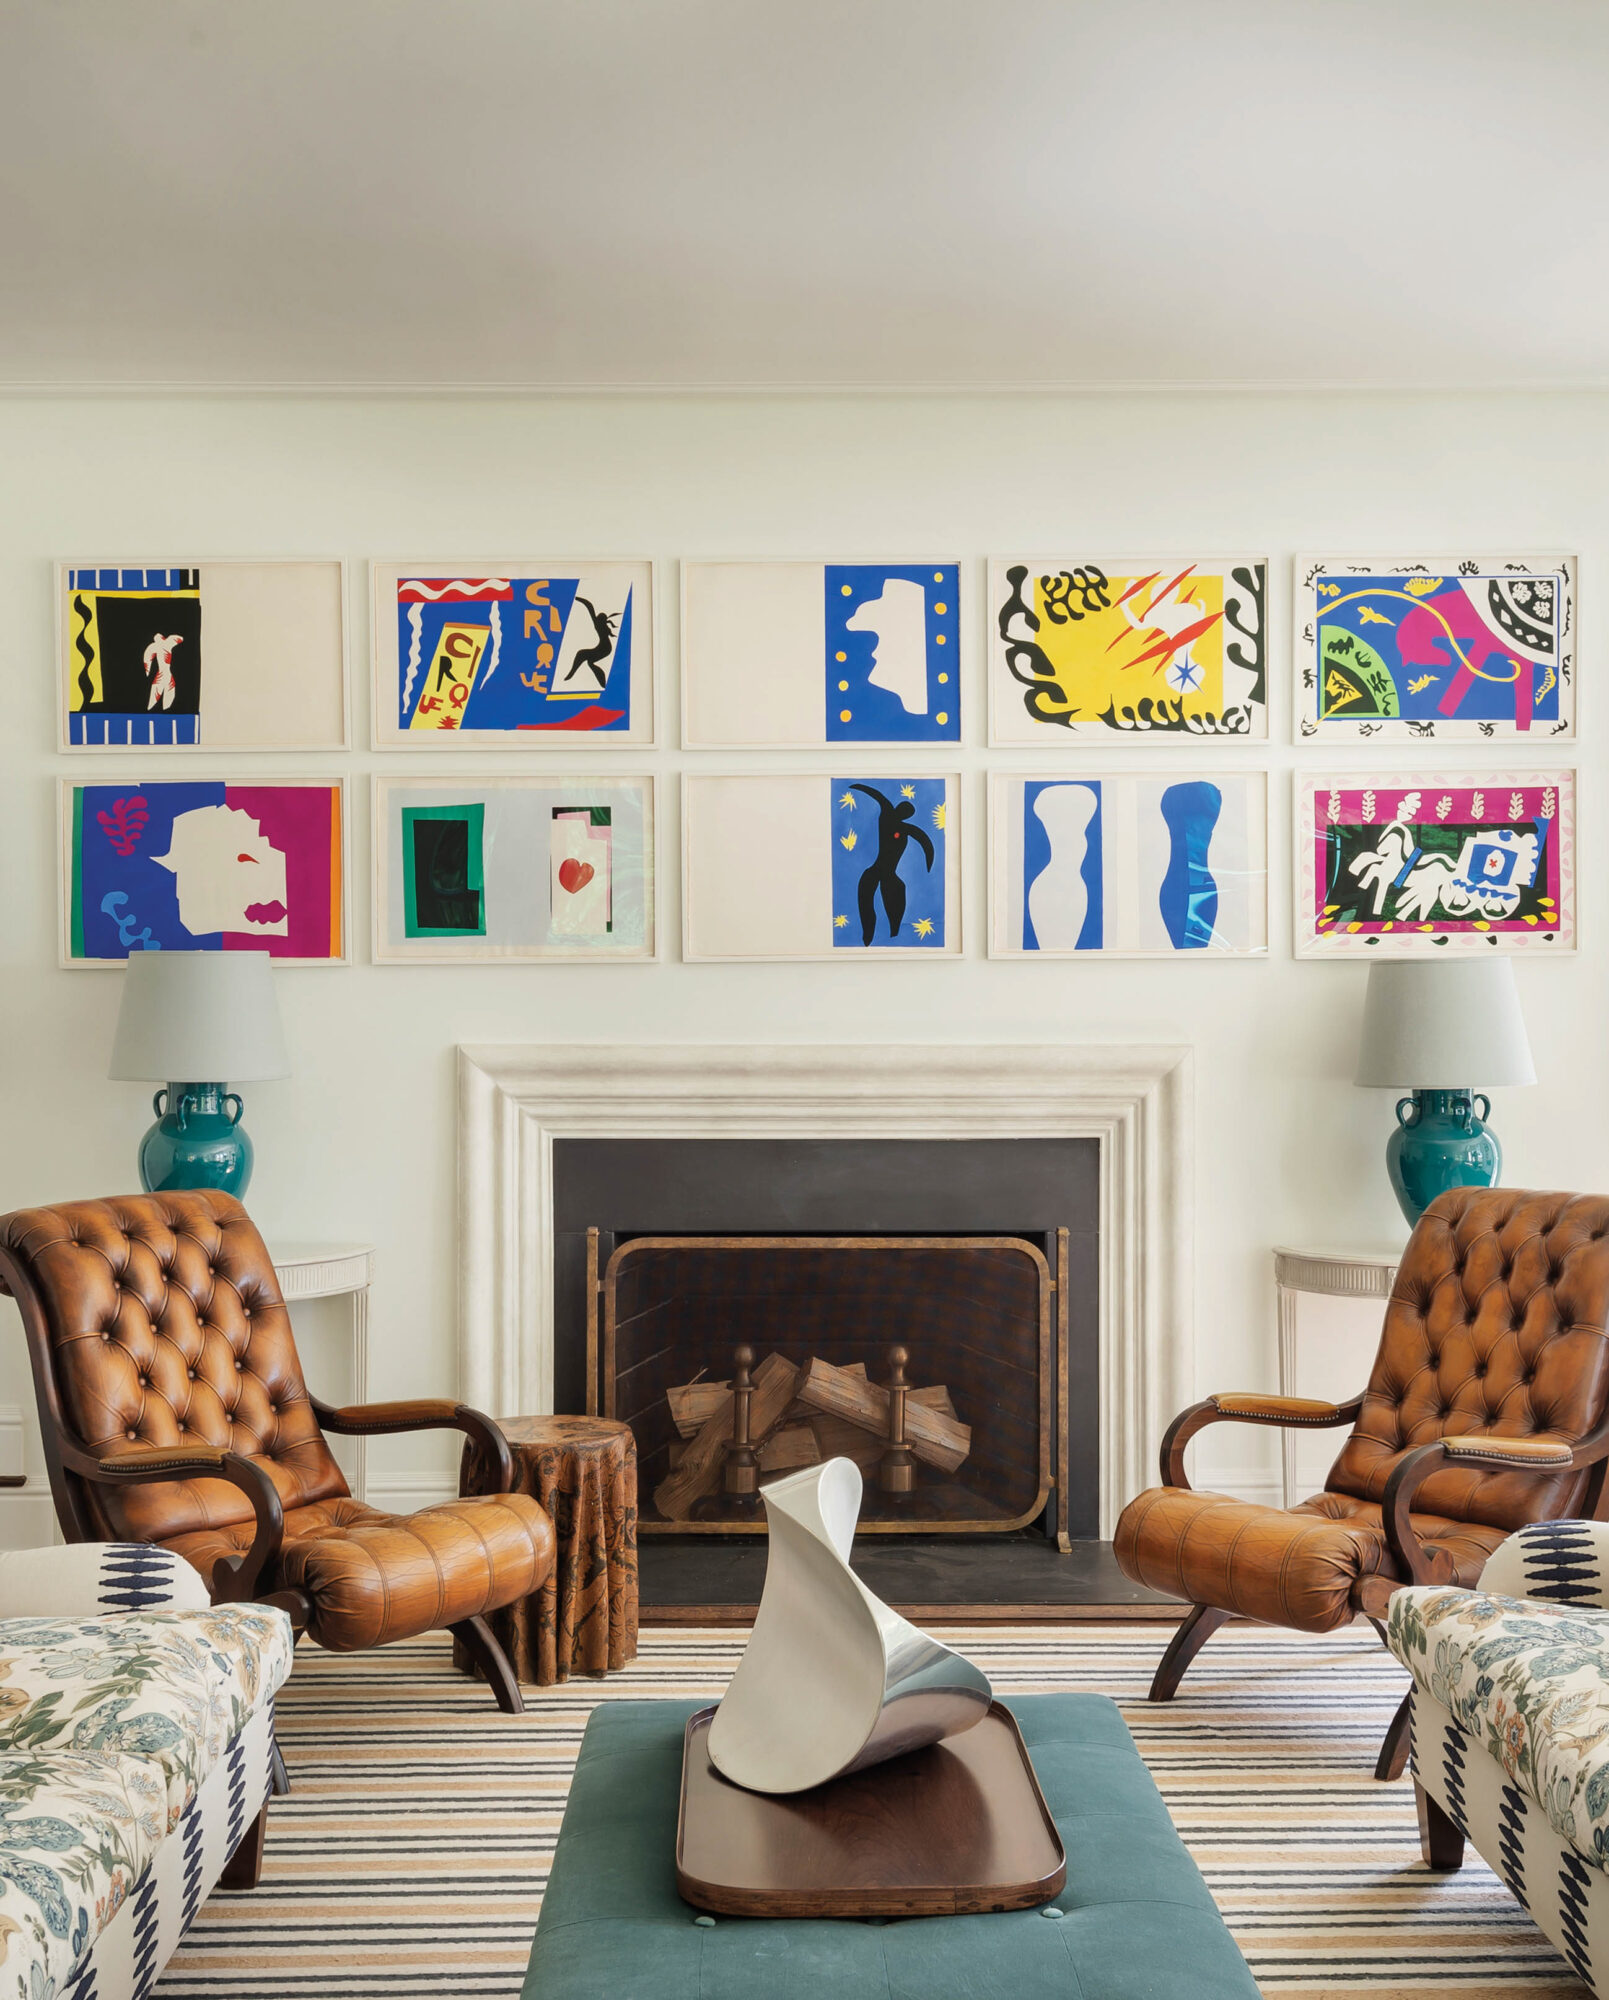 sitting area with leather armchairs and artwork